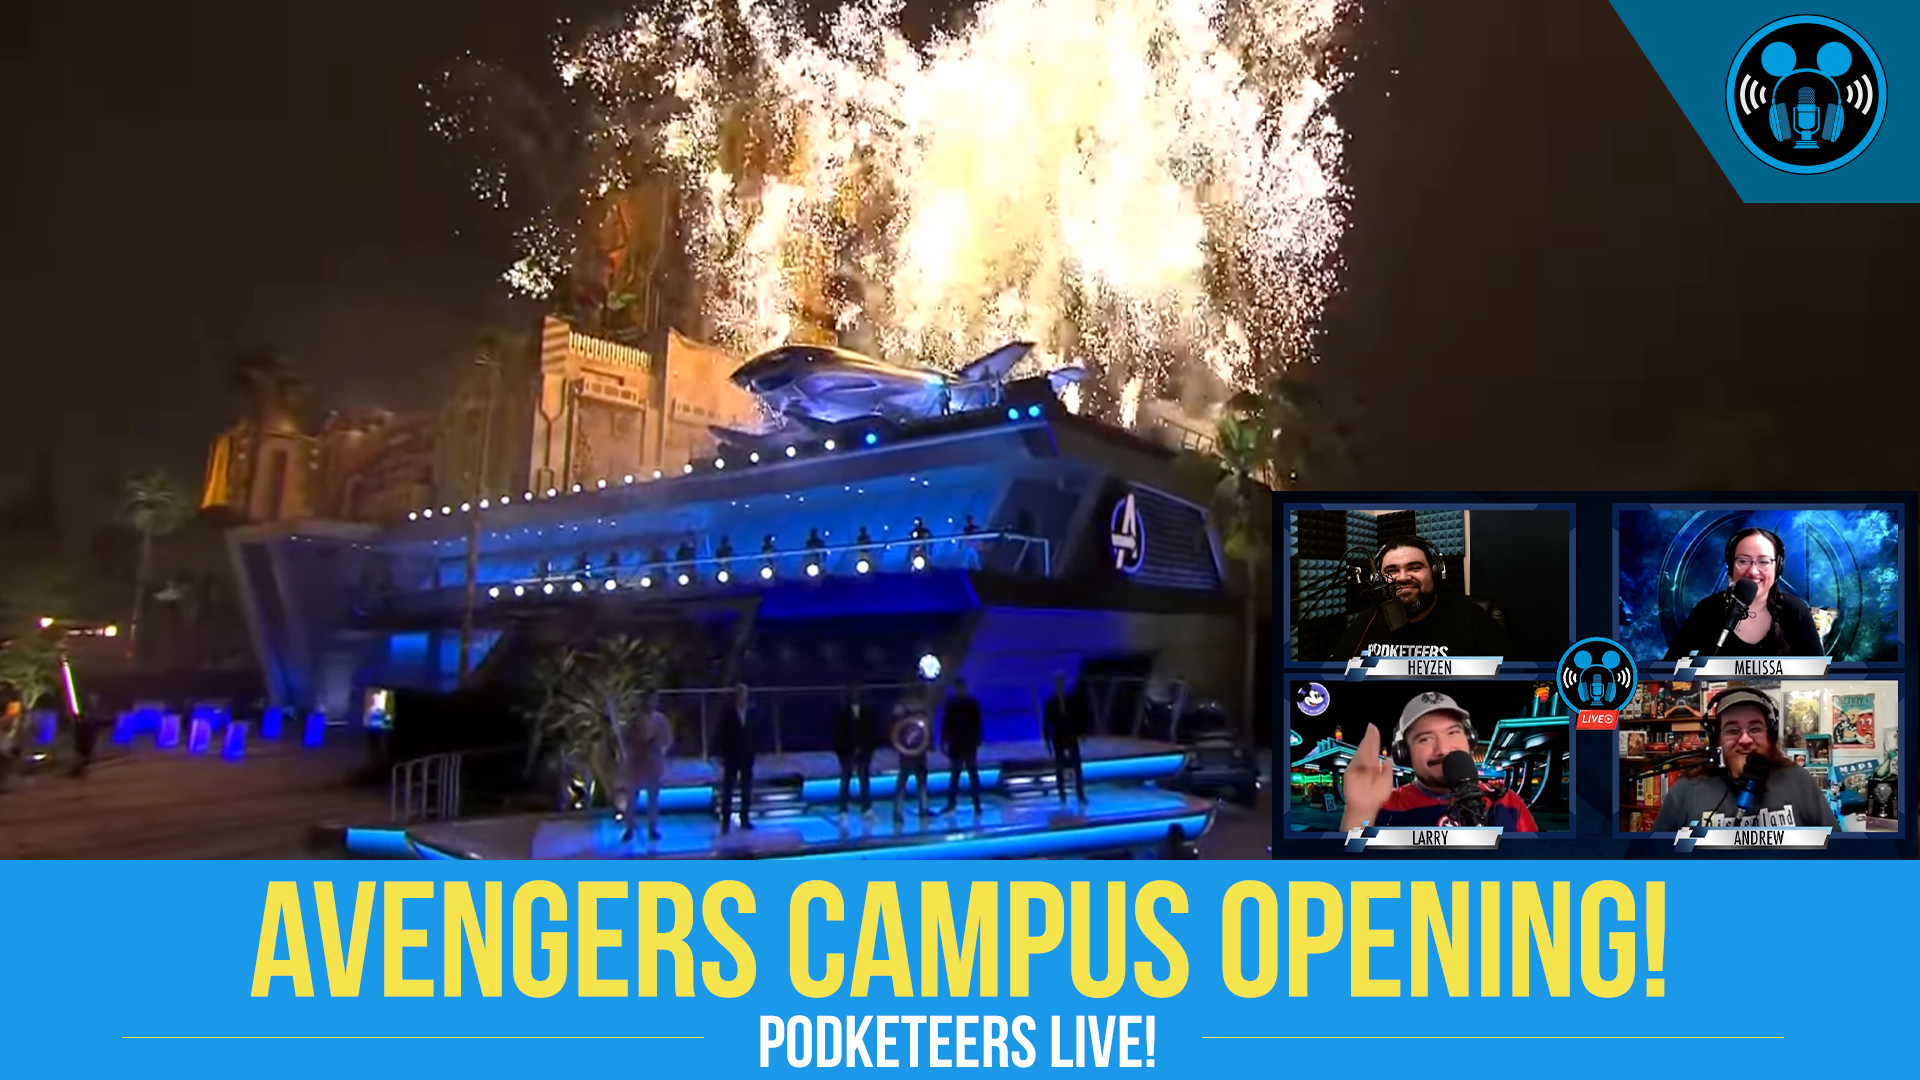 AVENGERS CAMPUS Opening – Podketeers LIVE!